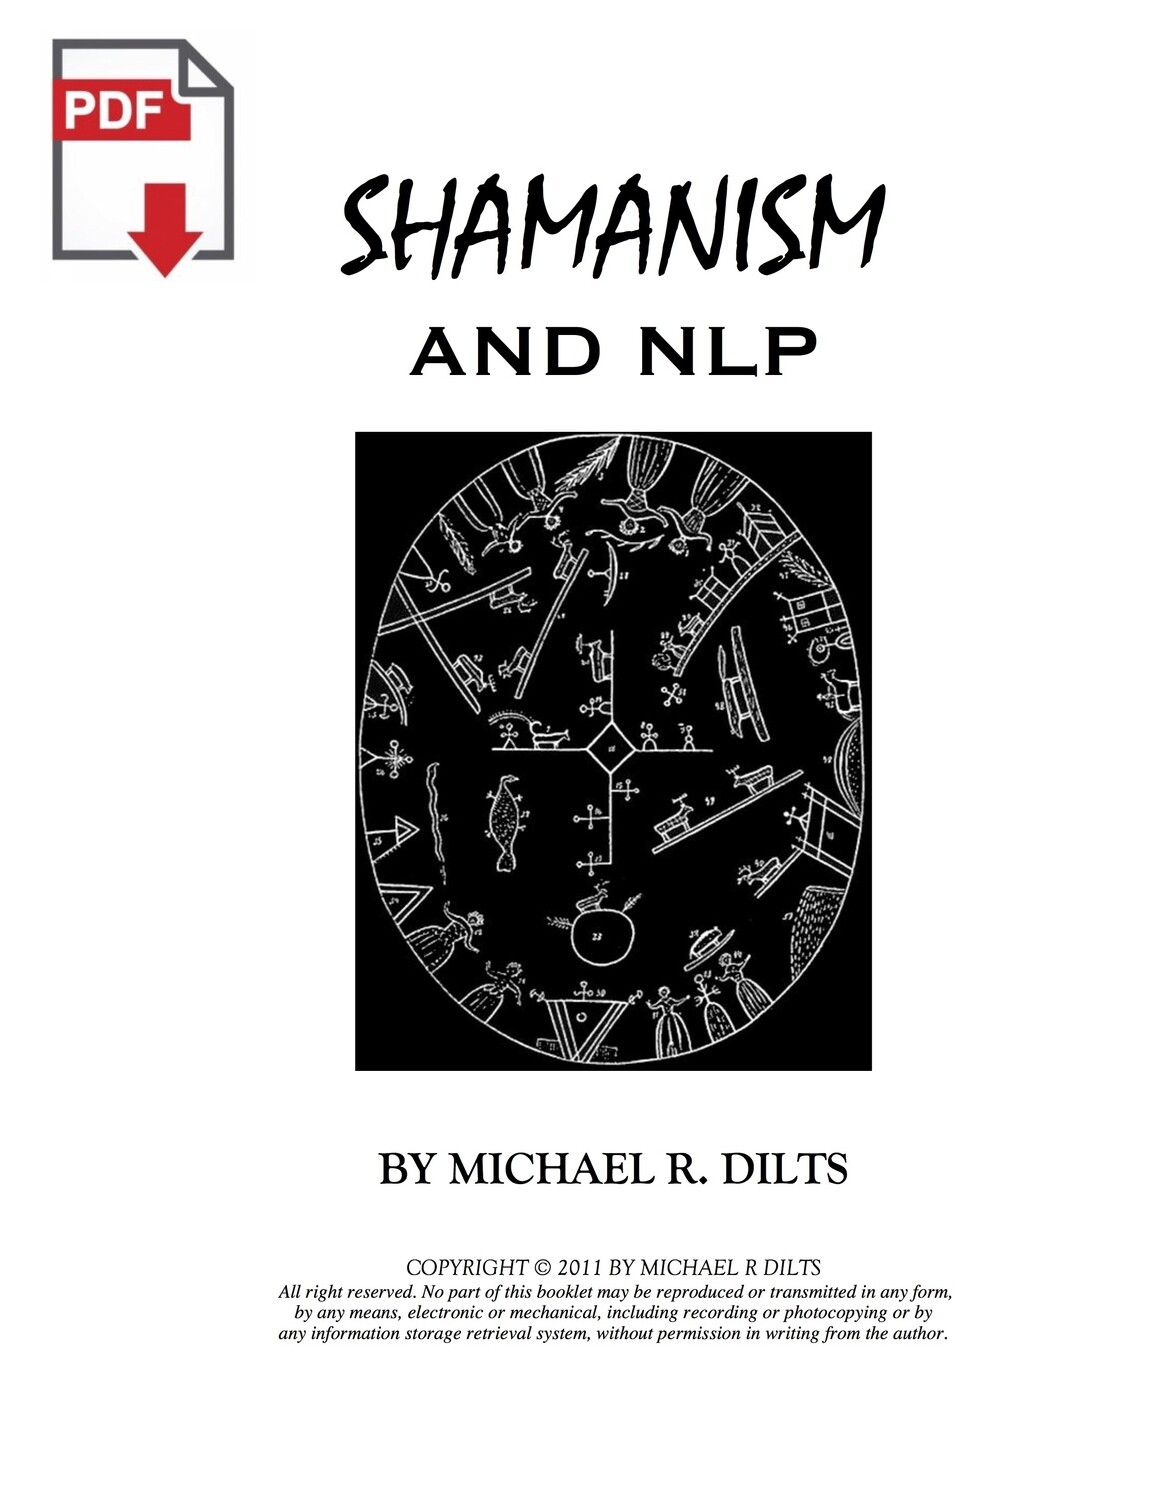 Shamanism and NLP by Michael R. Dilts [PDF]